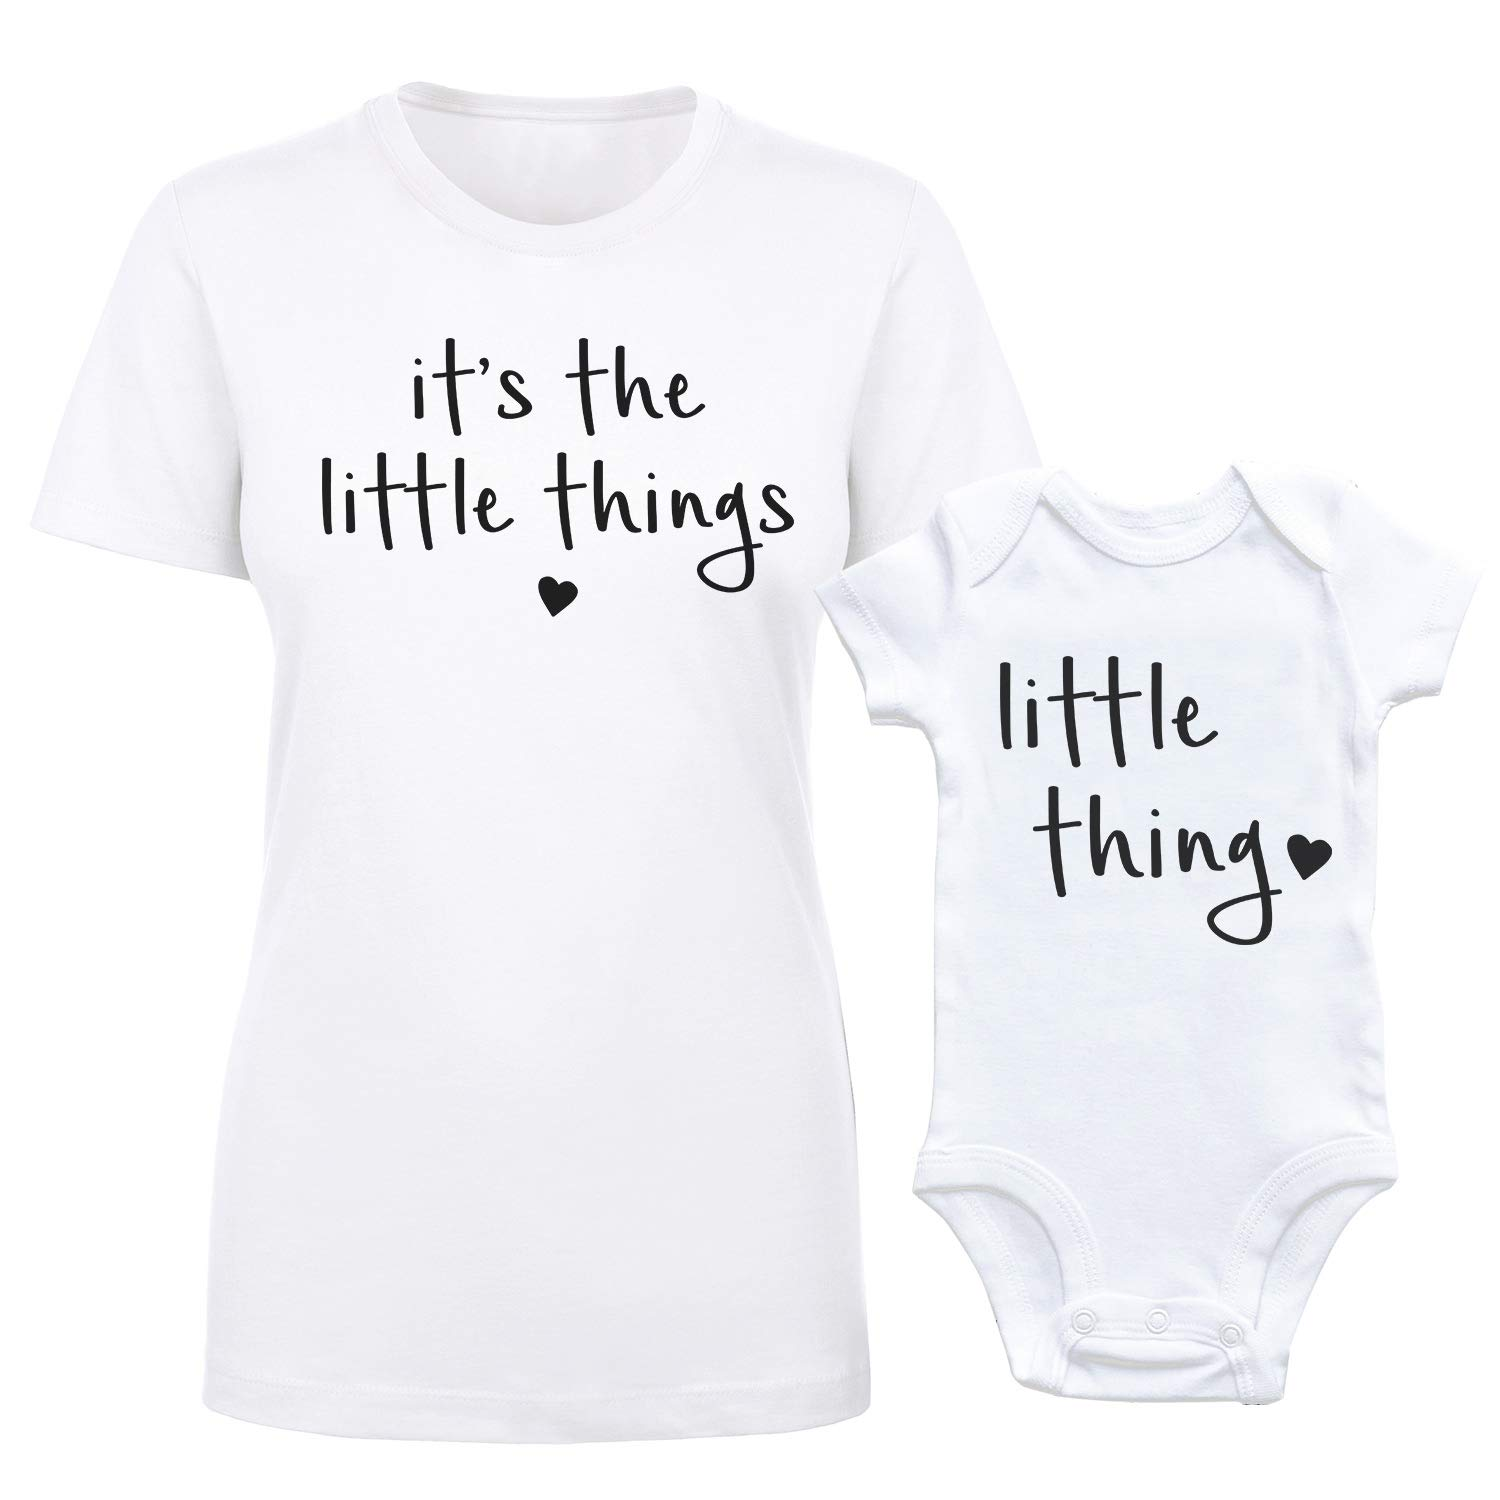 GOMOYO It's The Little Things Baby Onesie and Matching Mom or Dad T-Shirt (Medium - Women's, White - 3 Month)